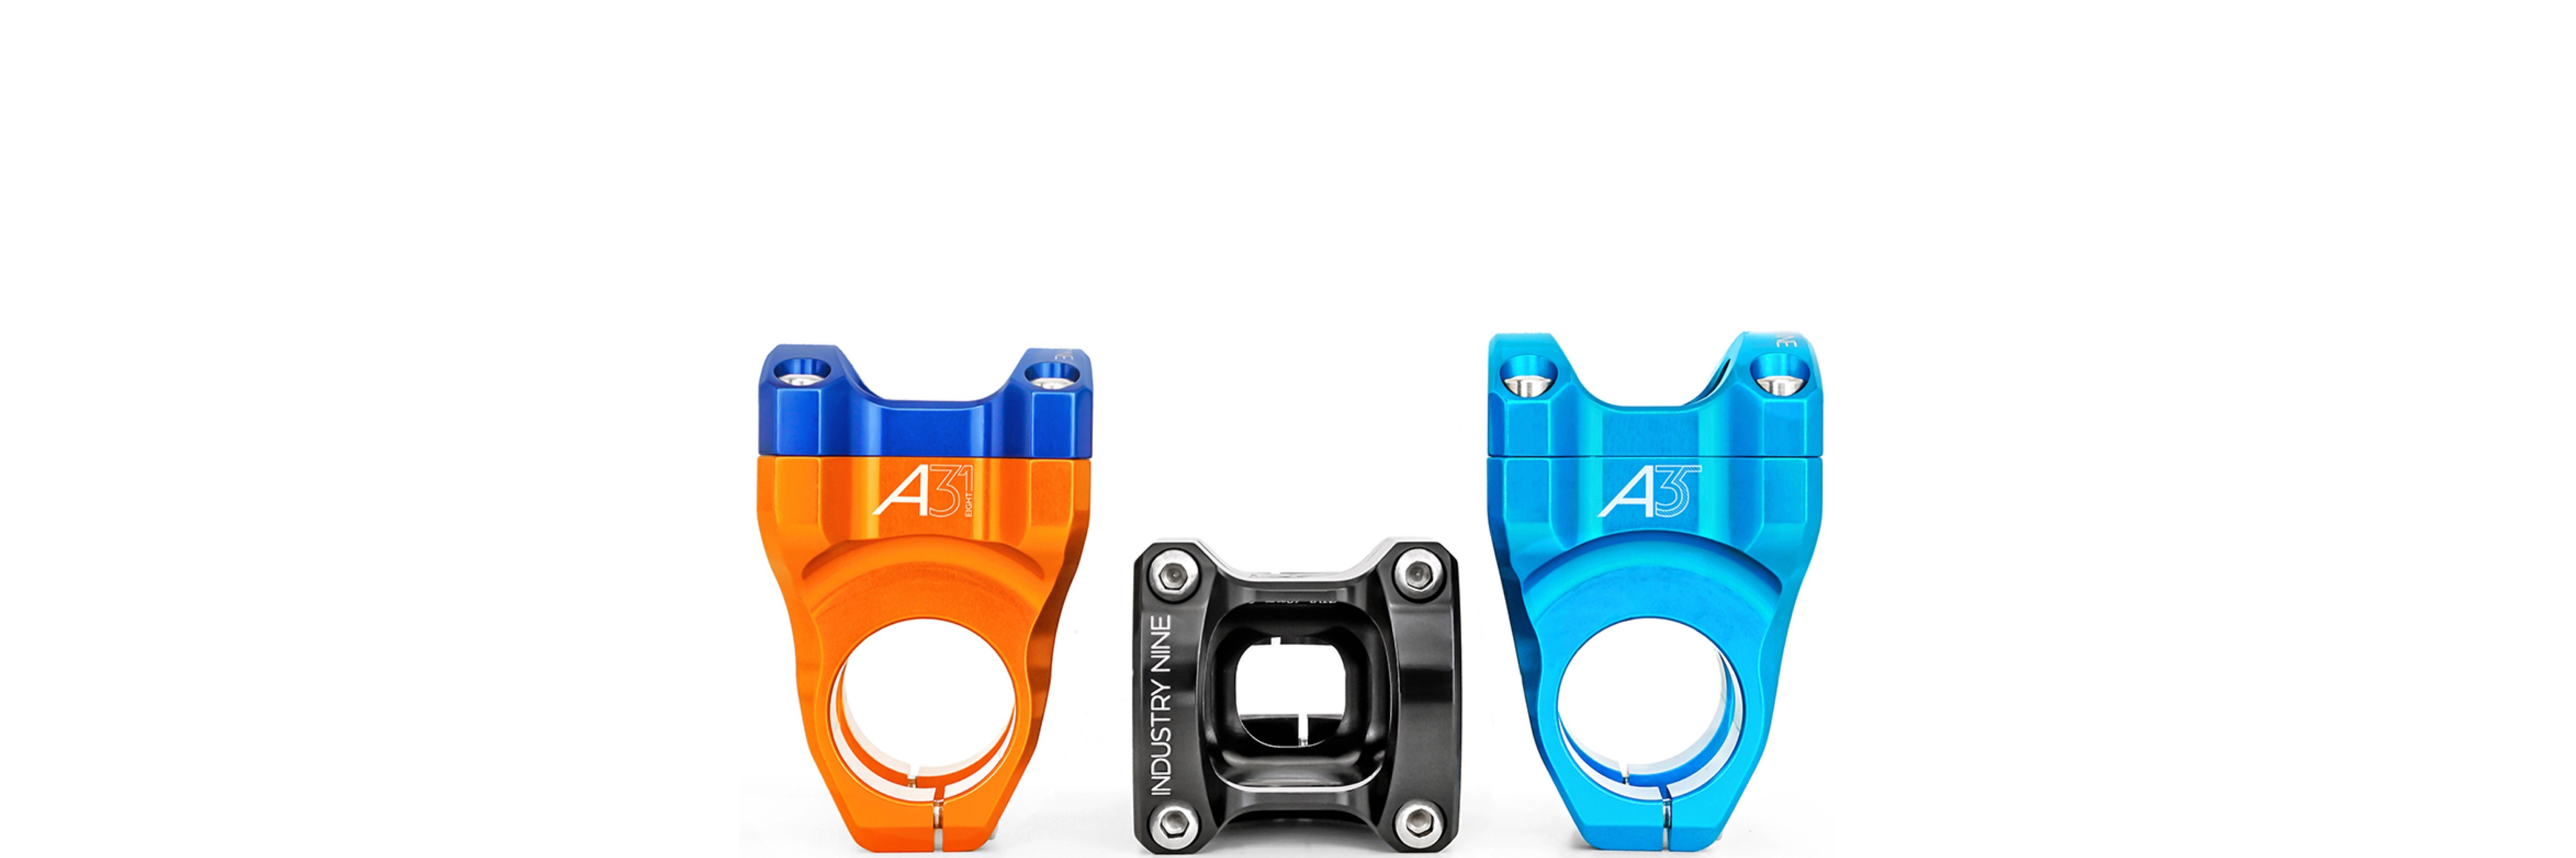 Three Industry Nine stems, one orange with dark blue, one black, and one light blue.